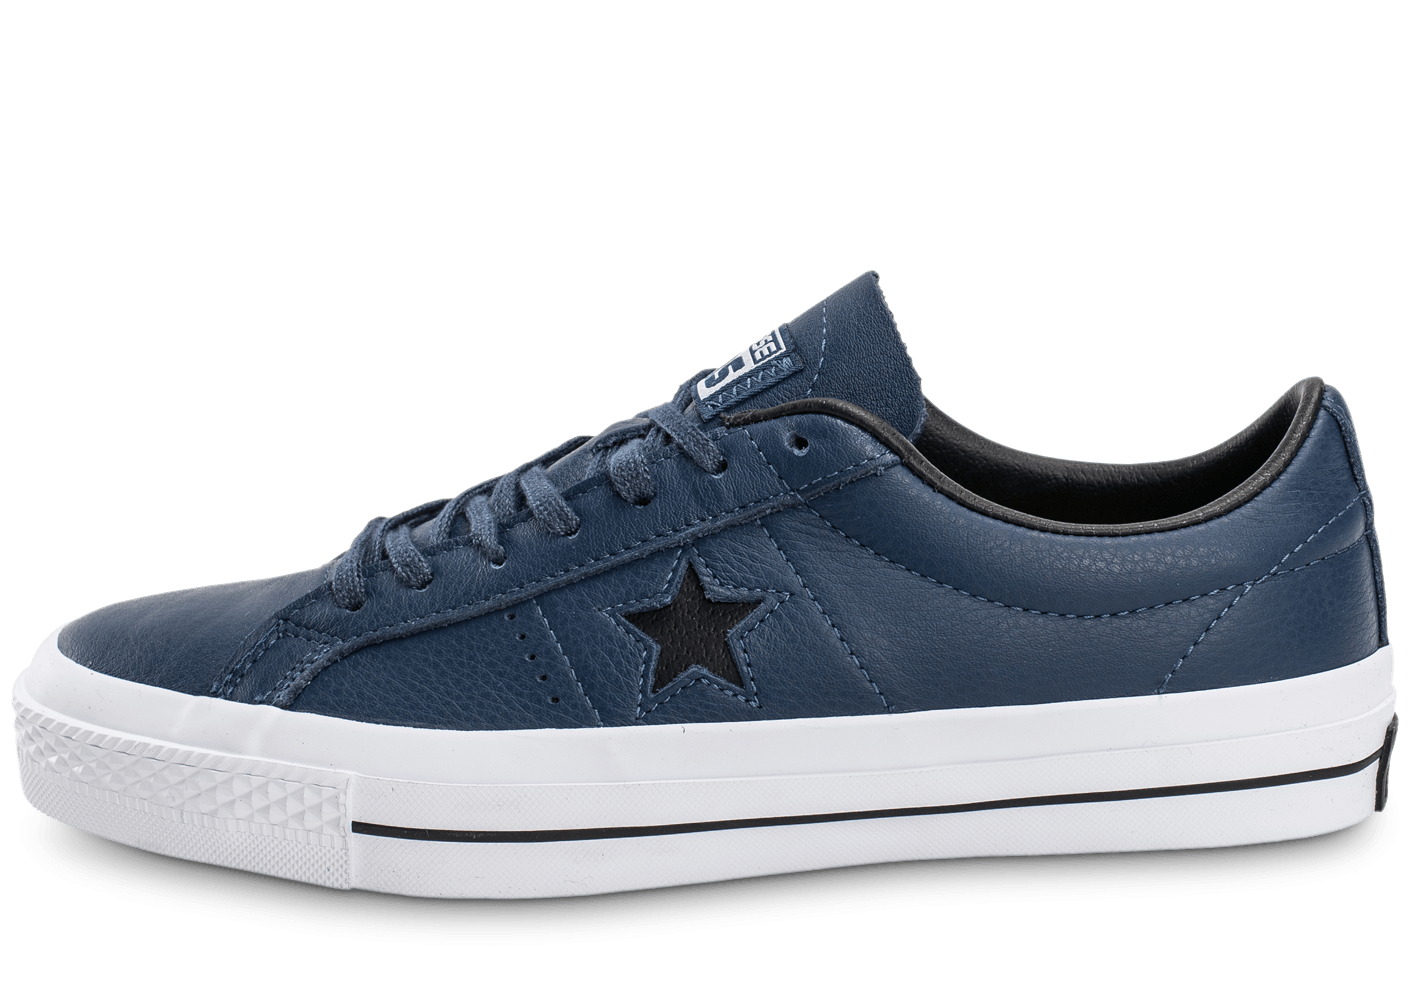 Converse One Star Leather bleu marine